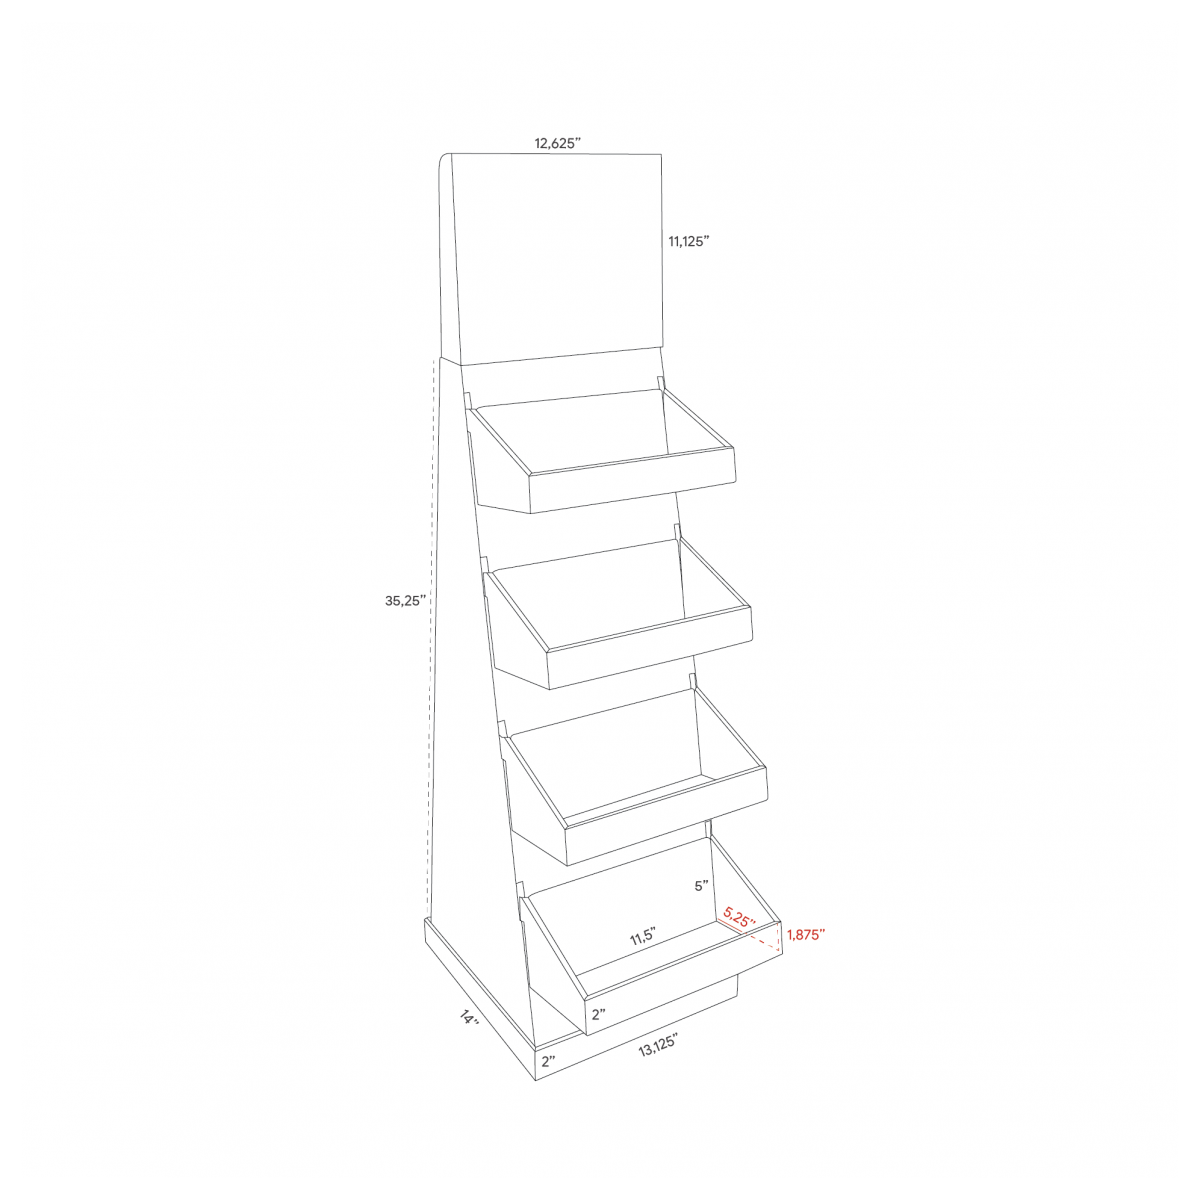 Cardboard floor display with header and shelves - dimensions